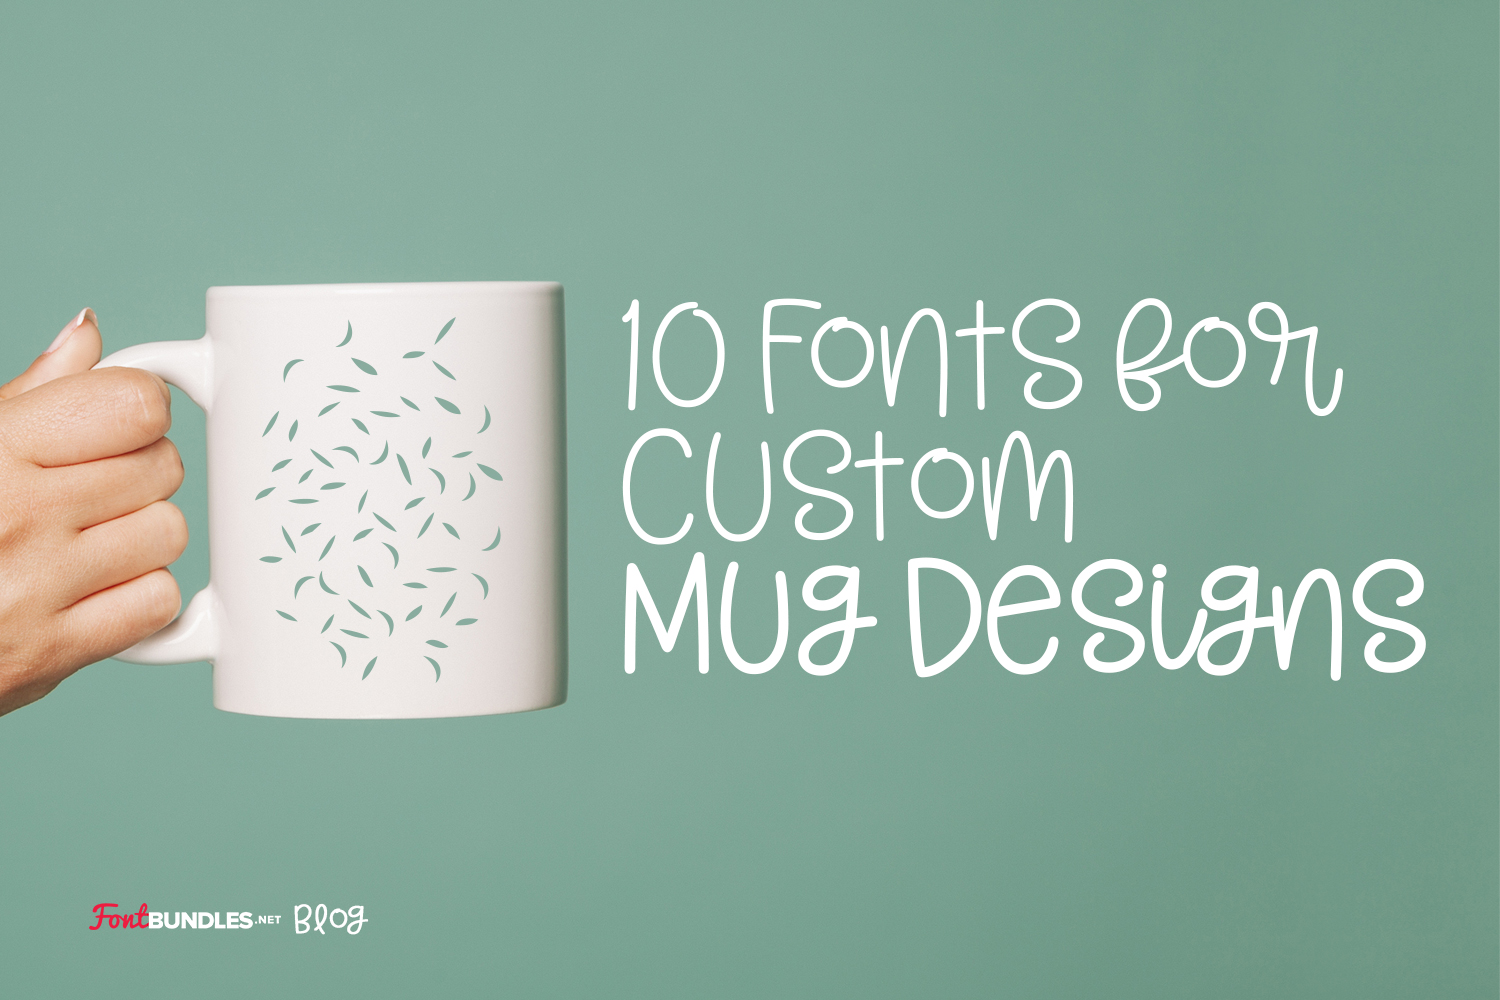 10 Fonts for Custom Mug Designs